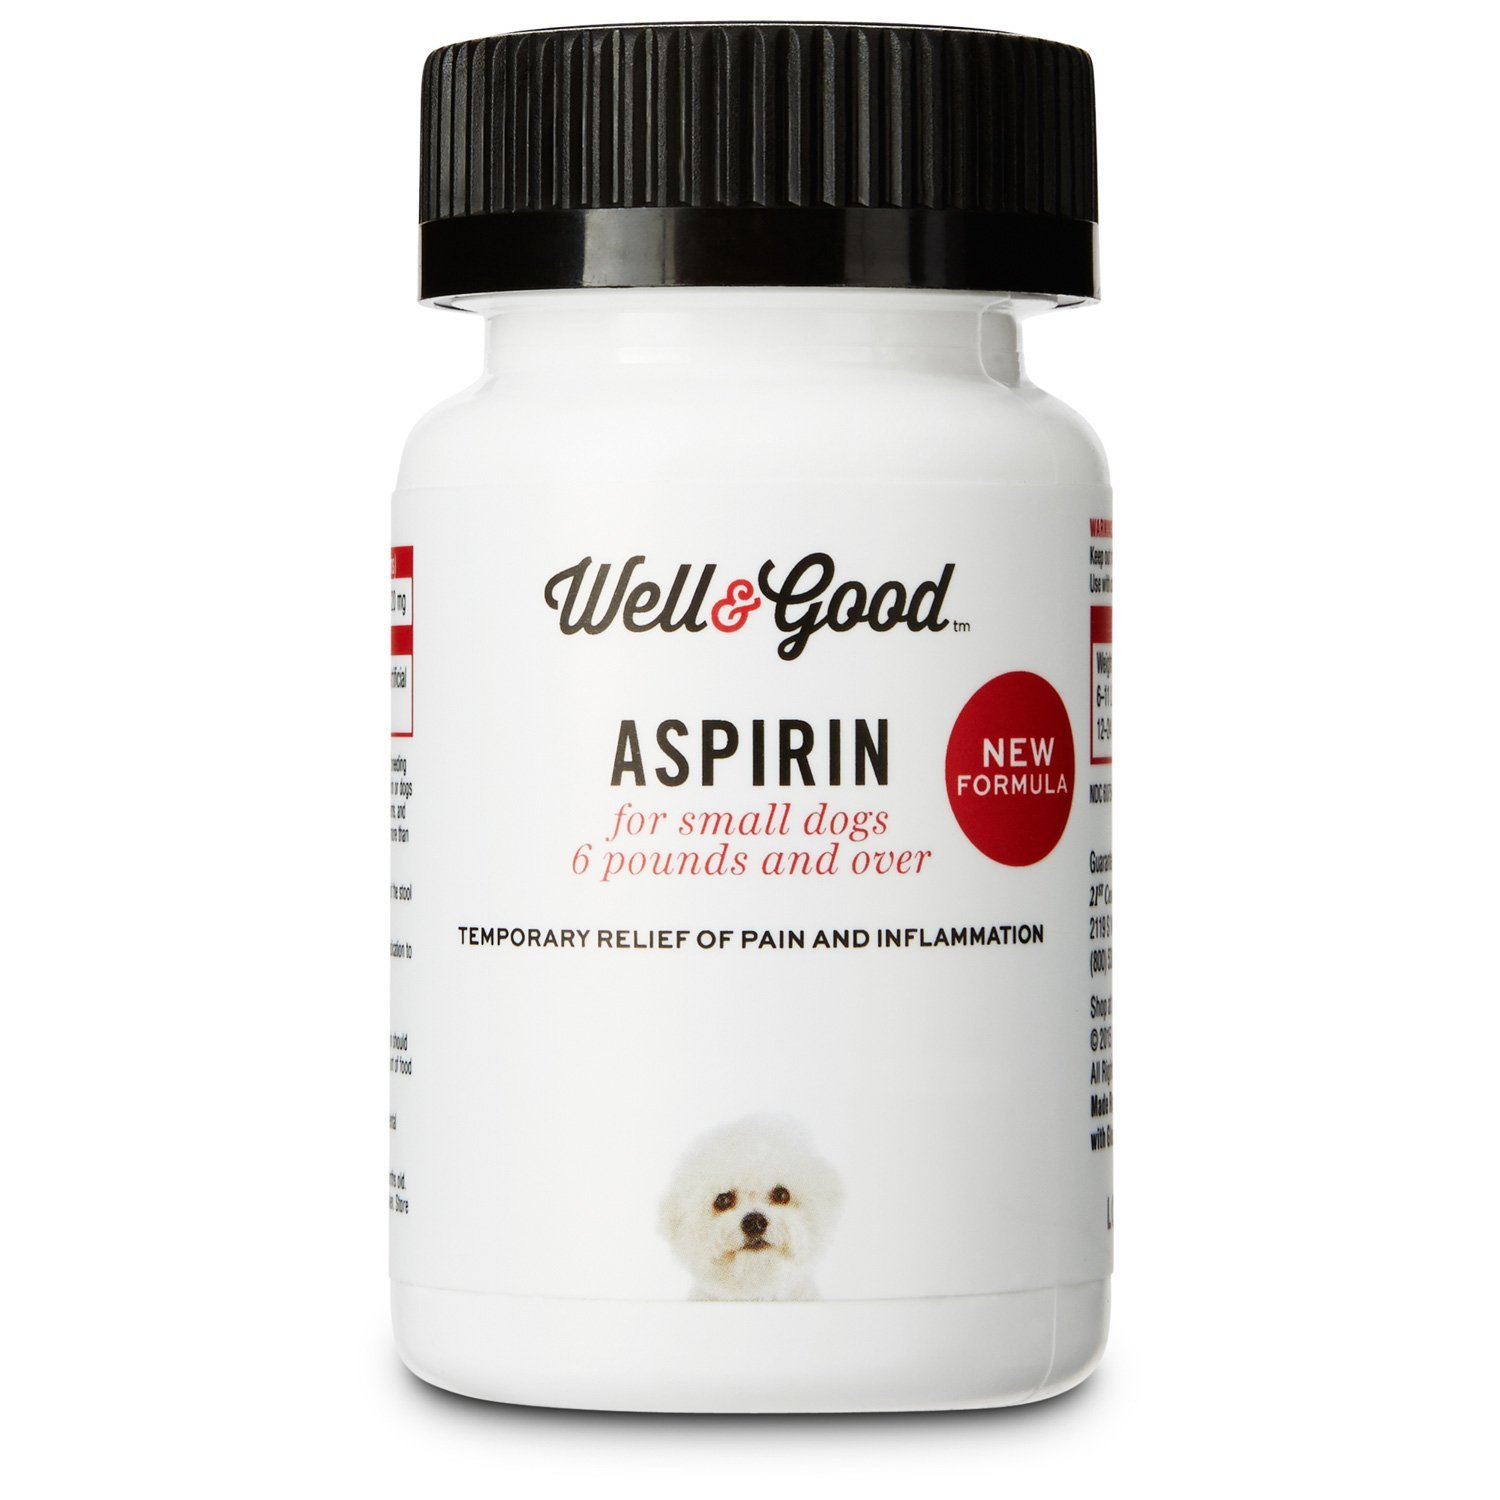 Well & Good Buffered Dog Aspirin, 75 Tablets, for Small Dogs by Well & Good